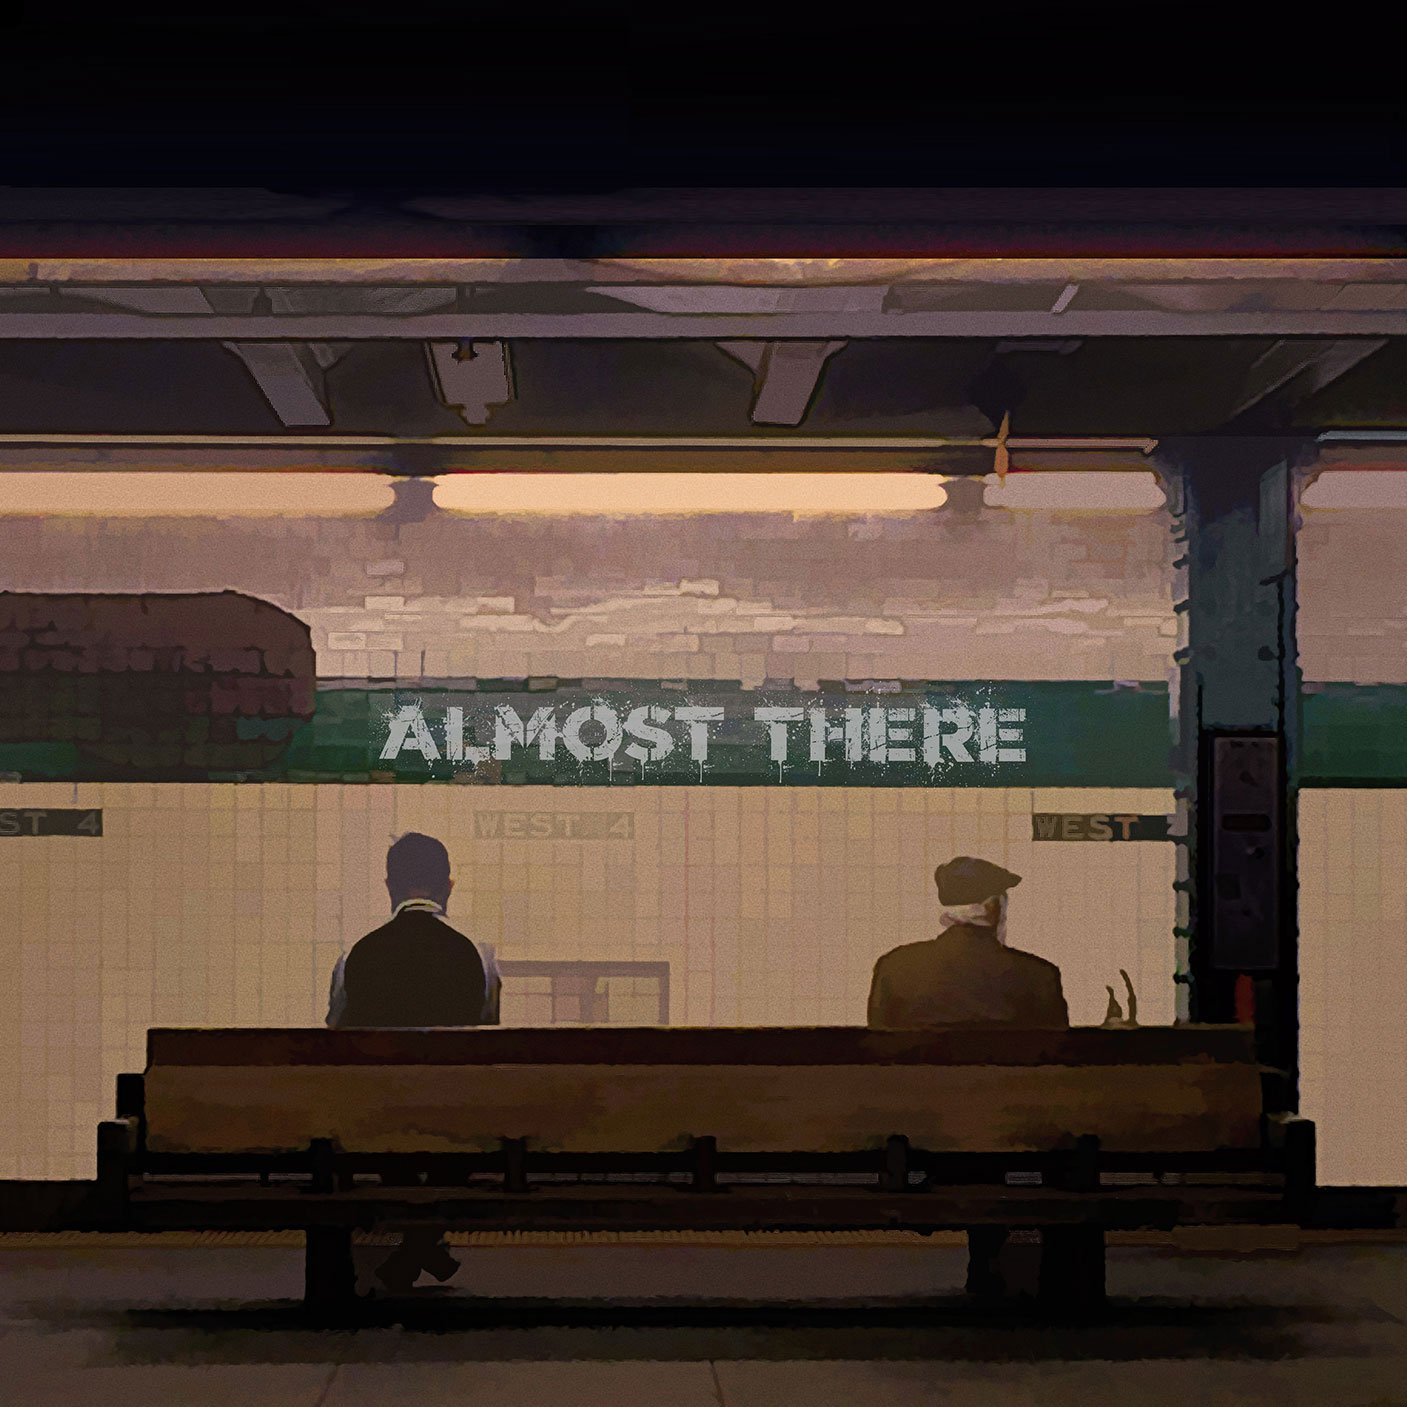 Almost There by Matt Artz